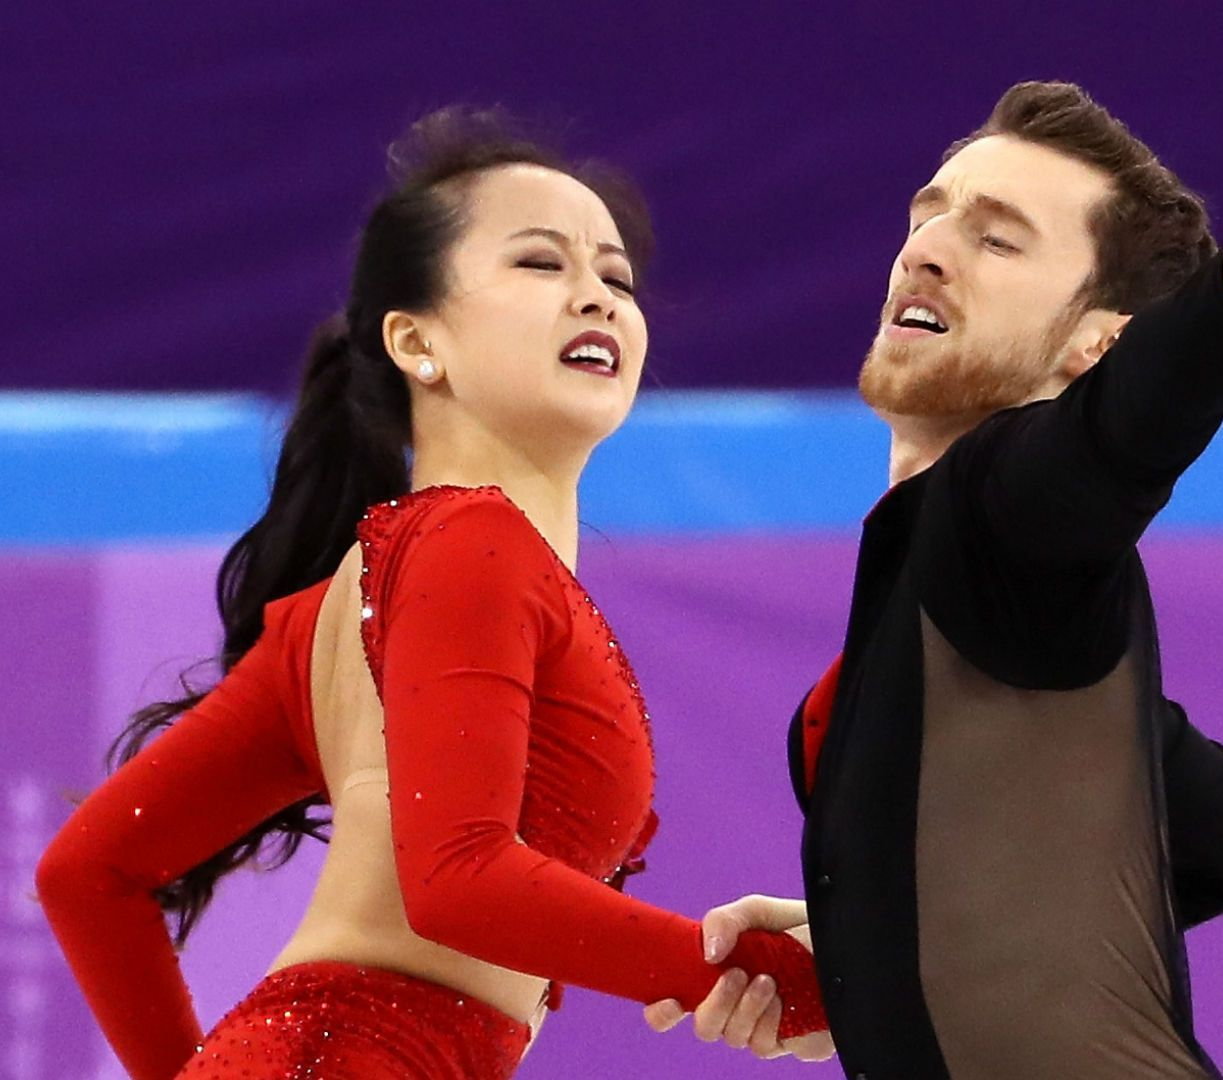 A wardrobe malfunction nearly led to an embarrassing moment for Yura Min on her Olympic debut on Sunday.